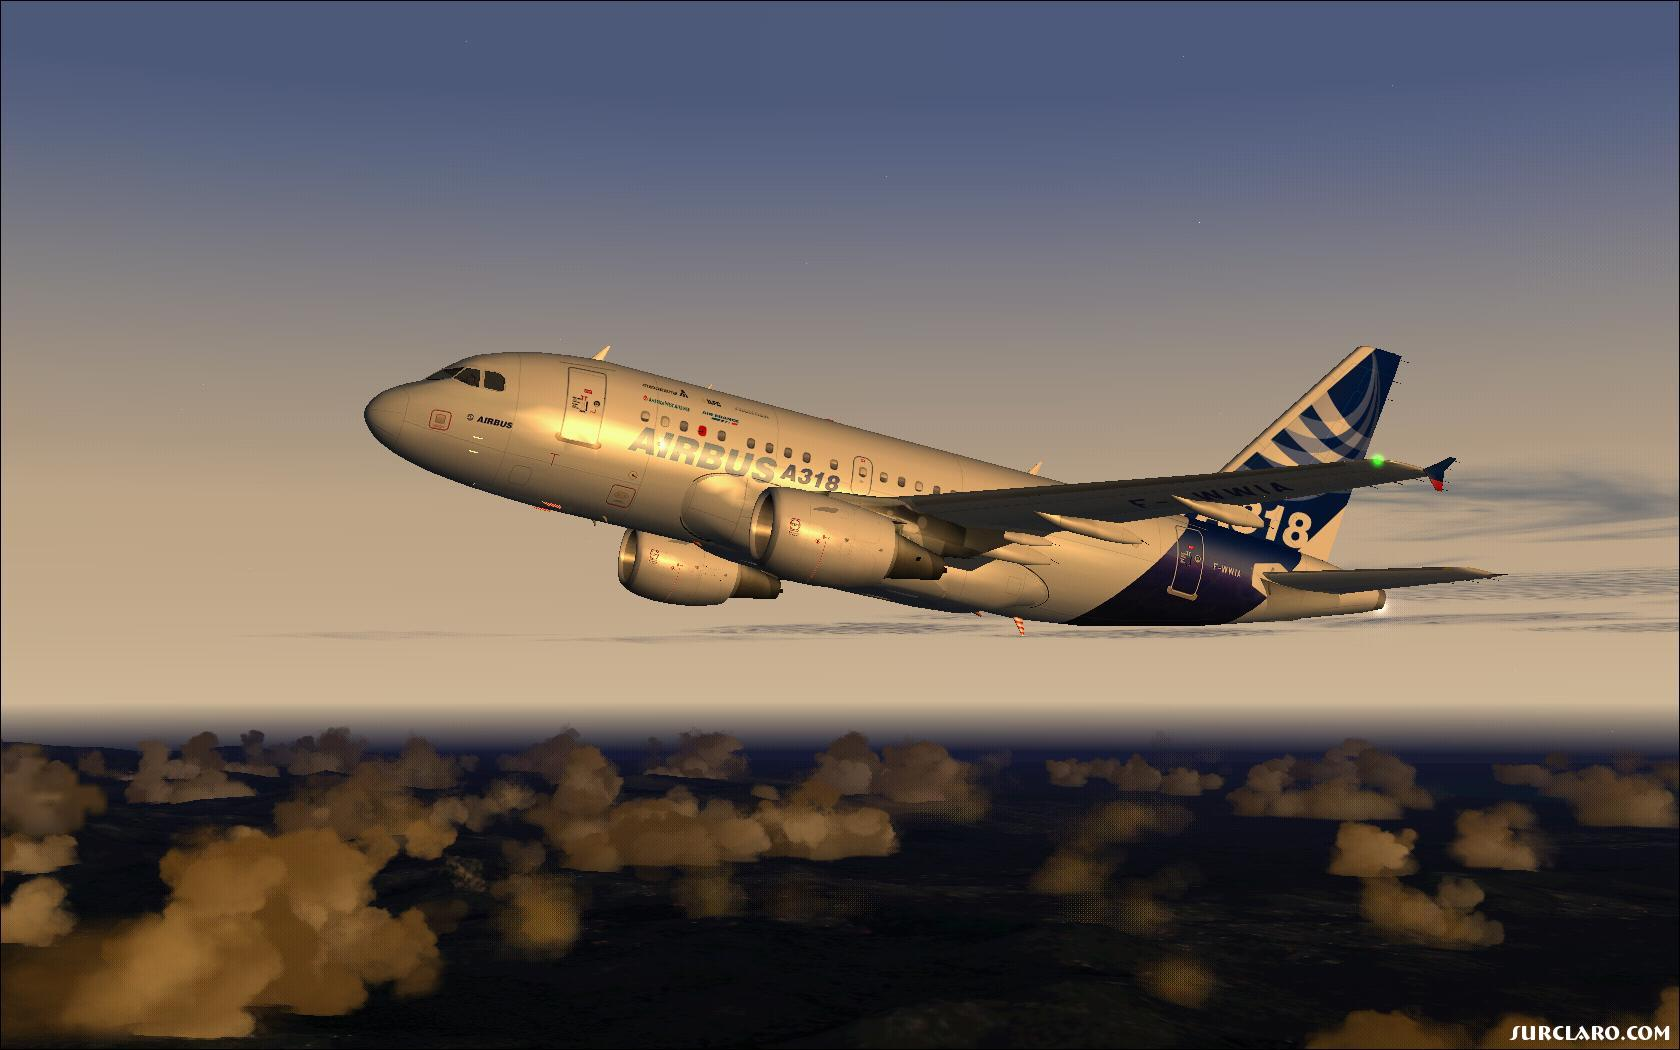 Airbus Industrie A318-100 dawning. - Photo 18747